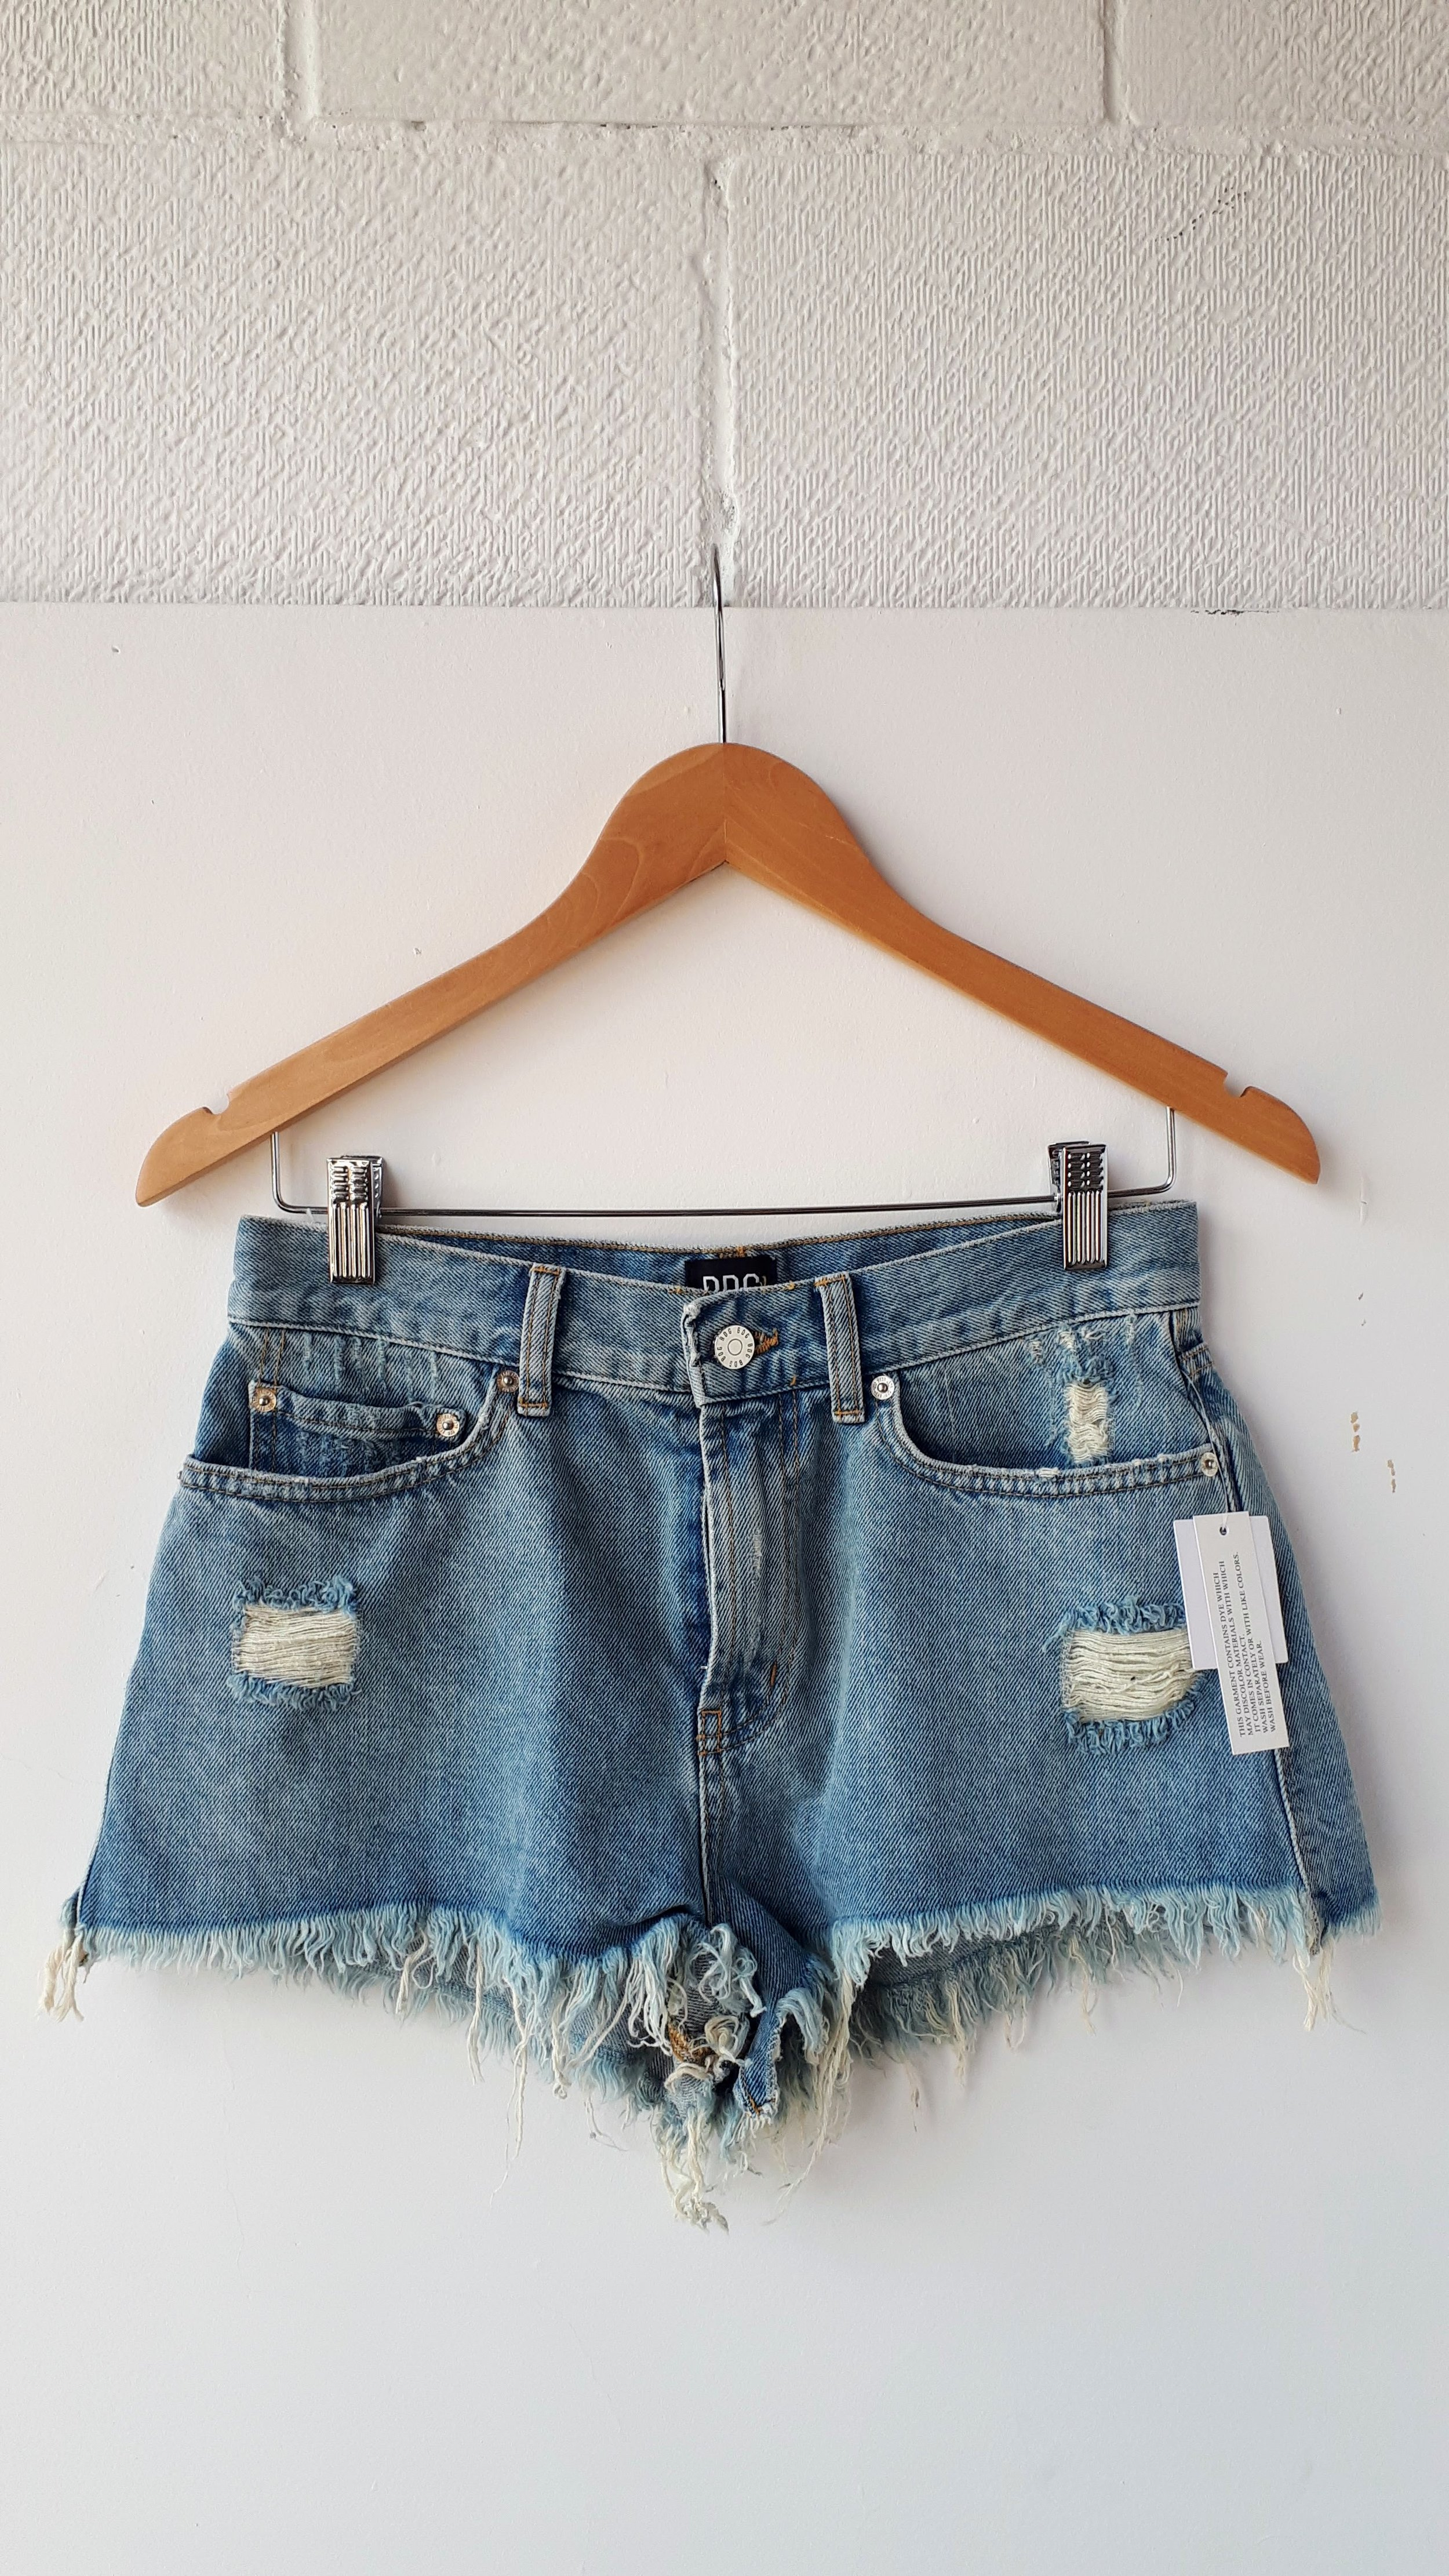 BDG shorts (NWT); Size 27, $24